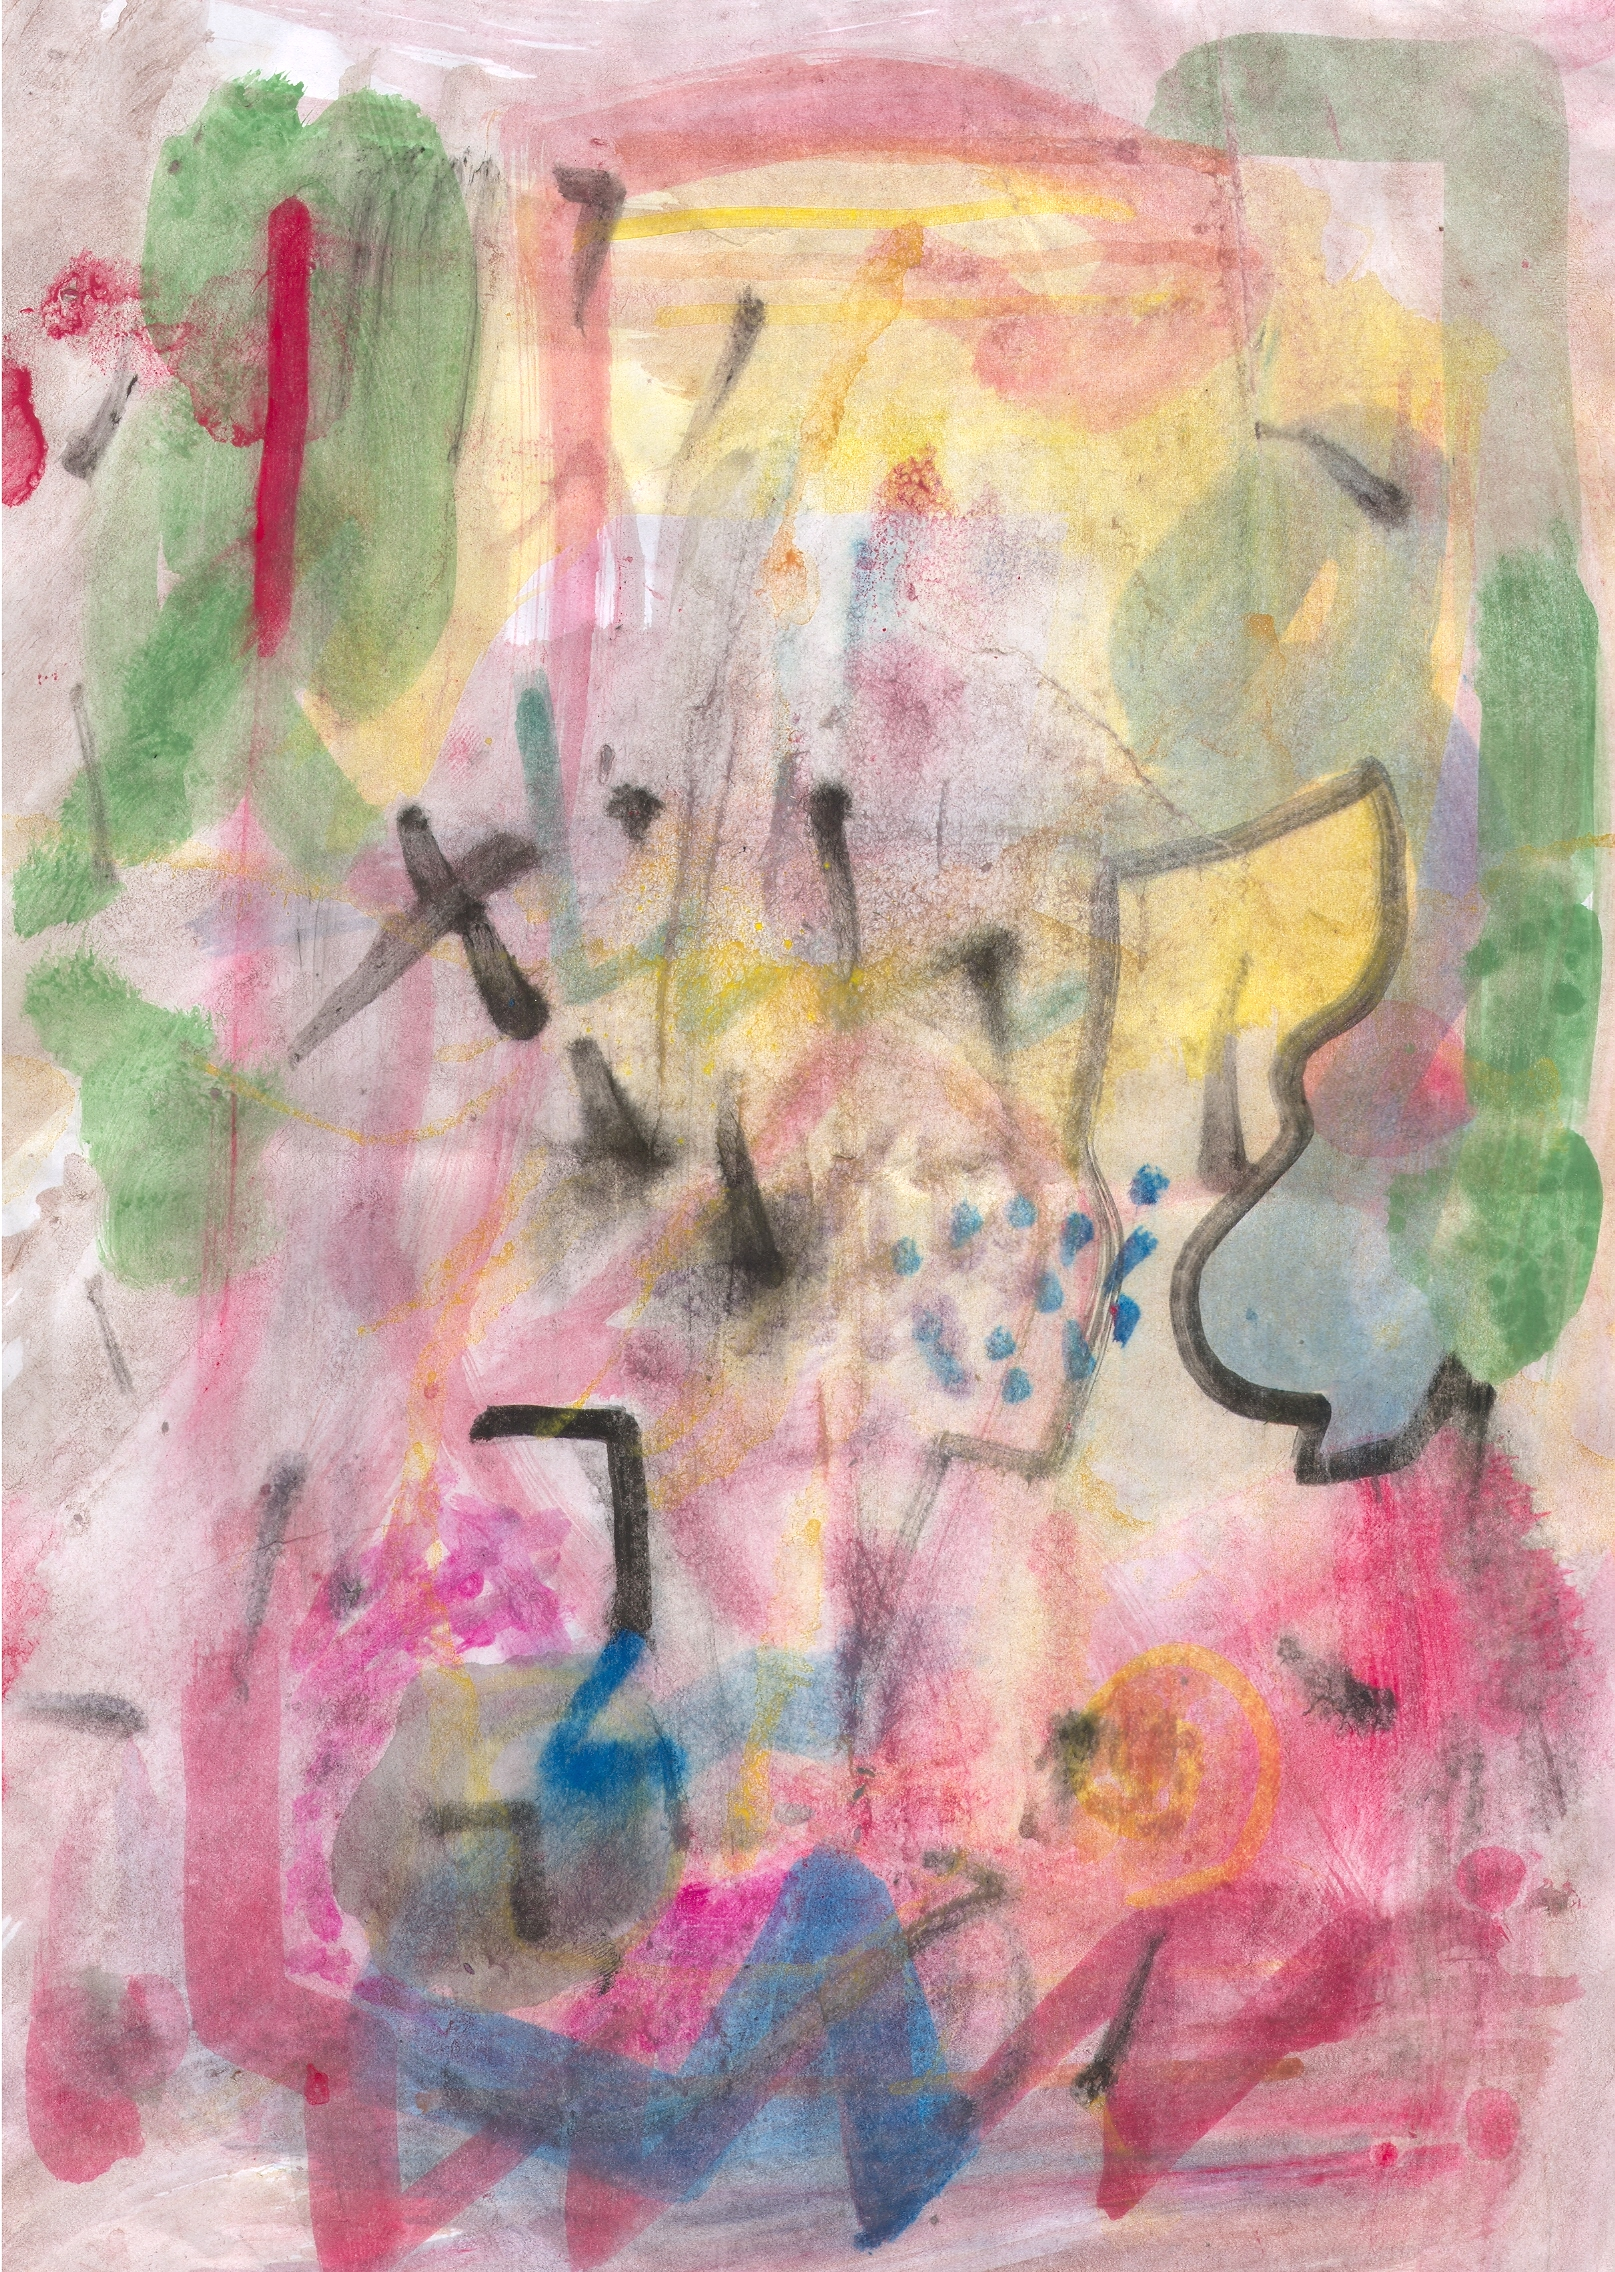 O.T. ( abstract composition ), 2015  Tempera Papier, 29.8x21cm